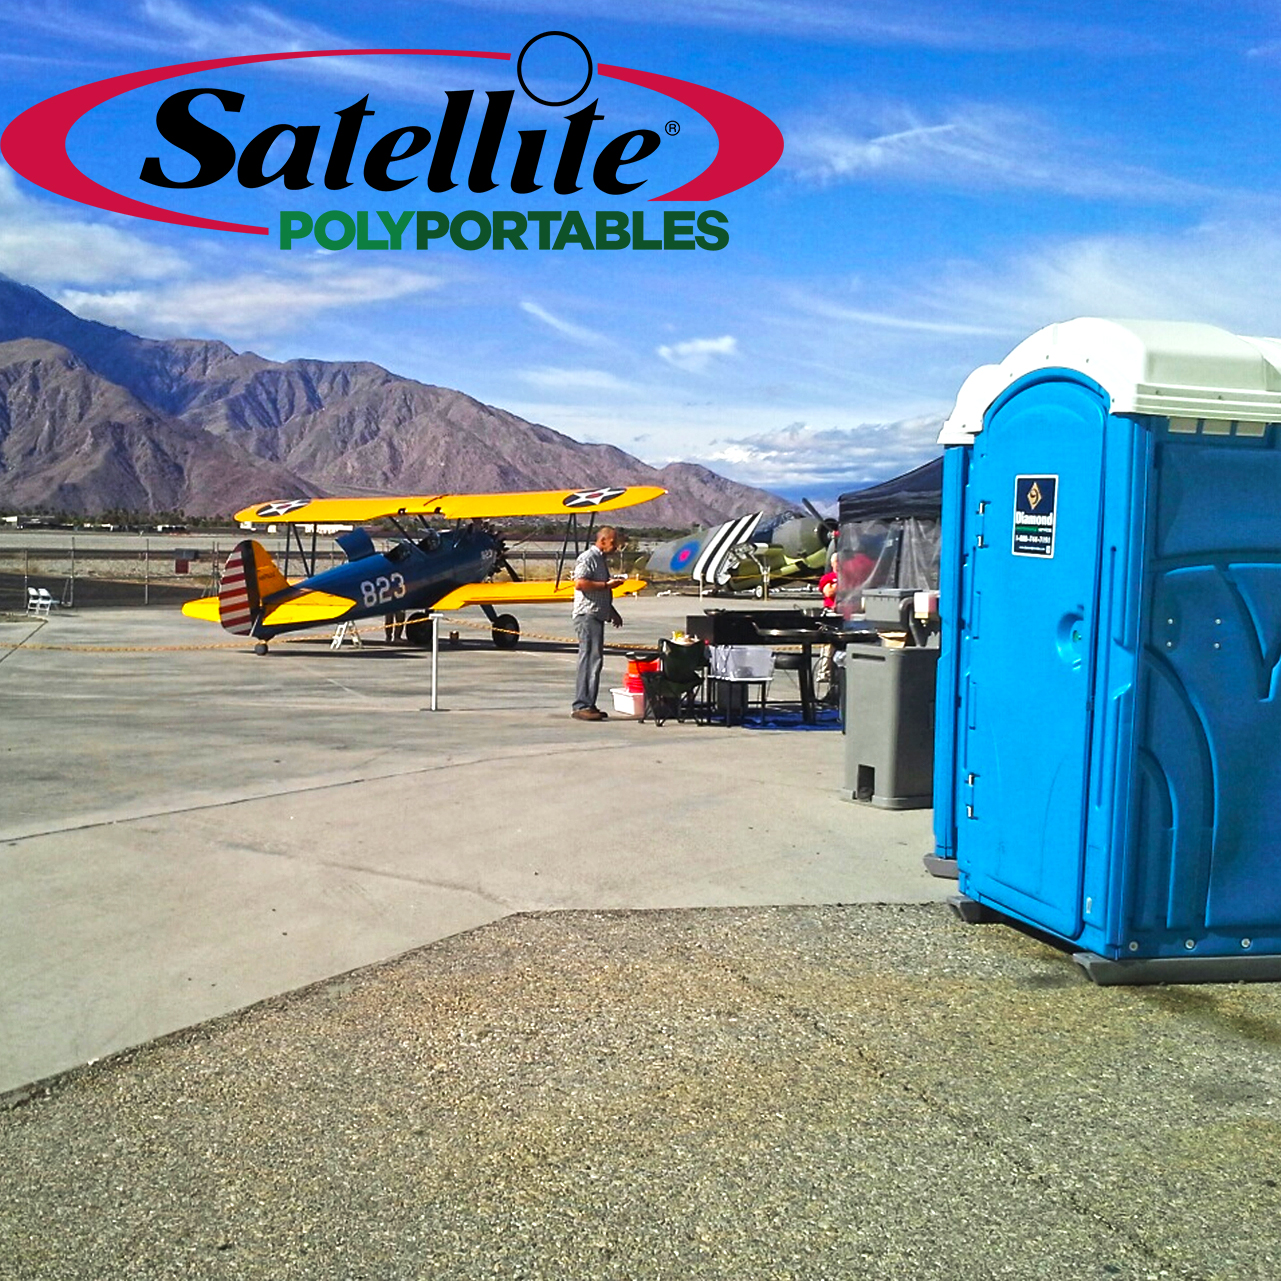 best restrooms with views in the US